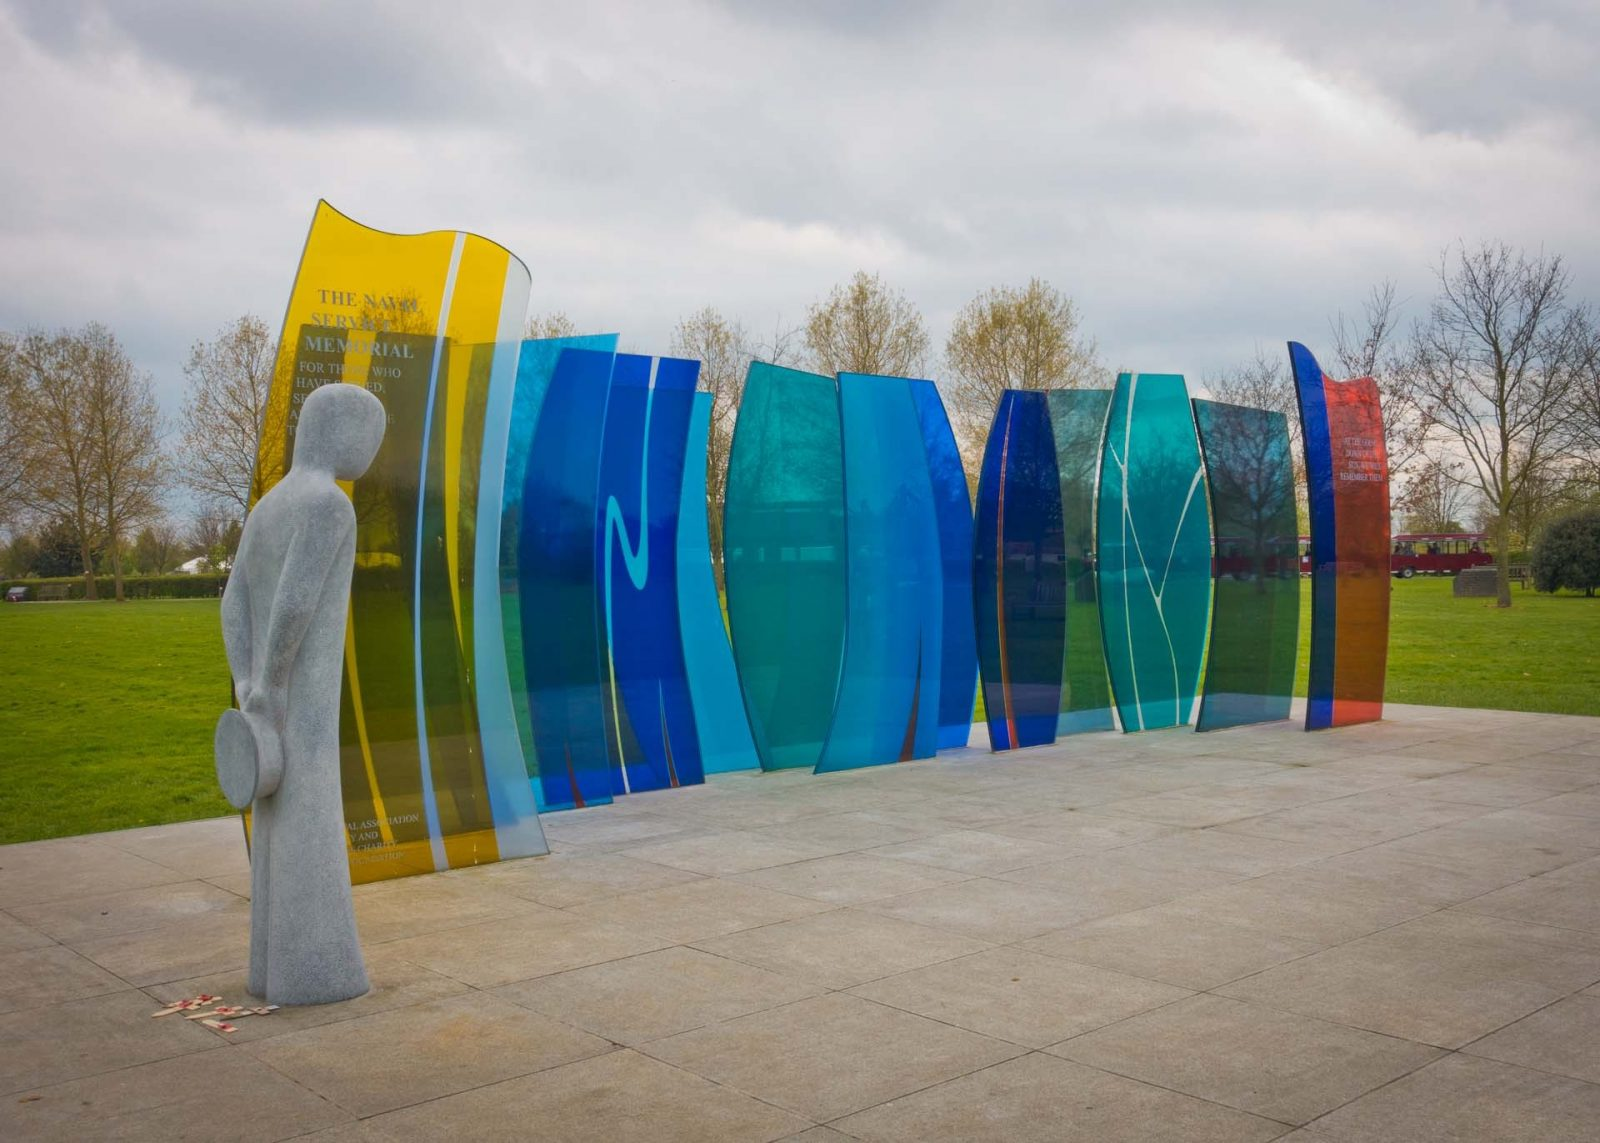 Discovering the National Memorial Arboretum with Kids on Falcondale Life blog. A day out in this sculpture park with visitor facilities including a playground and a review of the restaurant. Visitor information for families. The Navy Services Memorial.